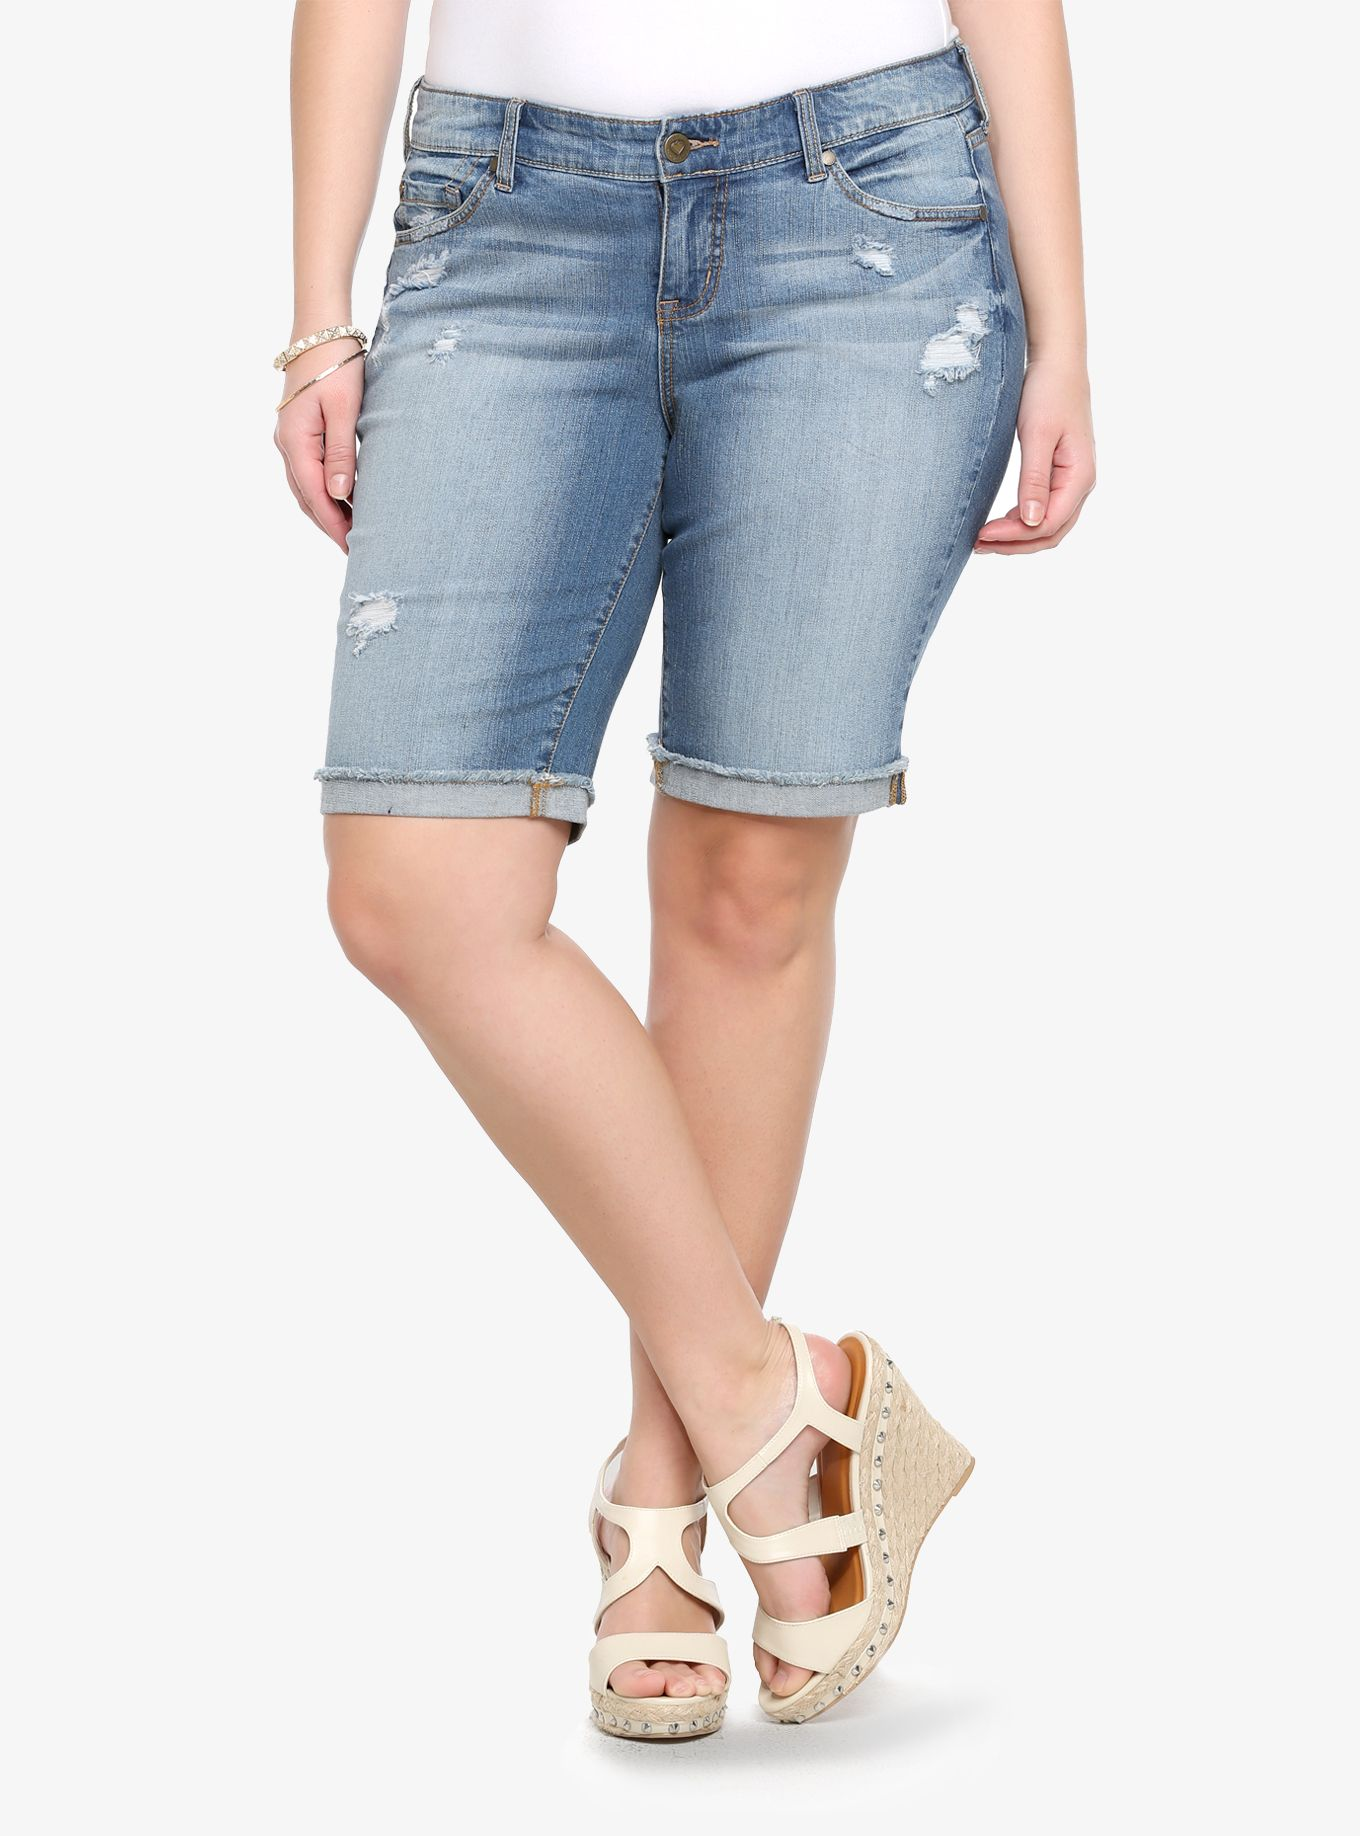 Our new White Label denim is casual American style - designed and fit just for you. It's authentic, lived-in fashion that's fun and sexy. Wear what you love.Our destructed boyfriend Bermuda shorts are eased through the hip and thigh with a frayed cuffed hem. The light washed denim has an authentic, classic feel.